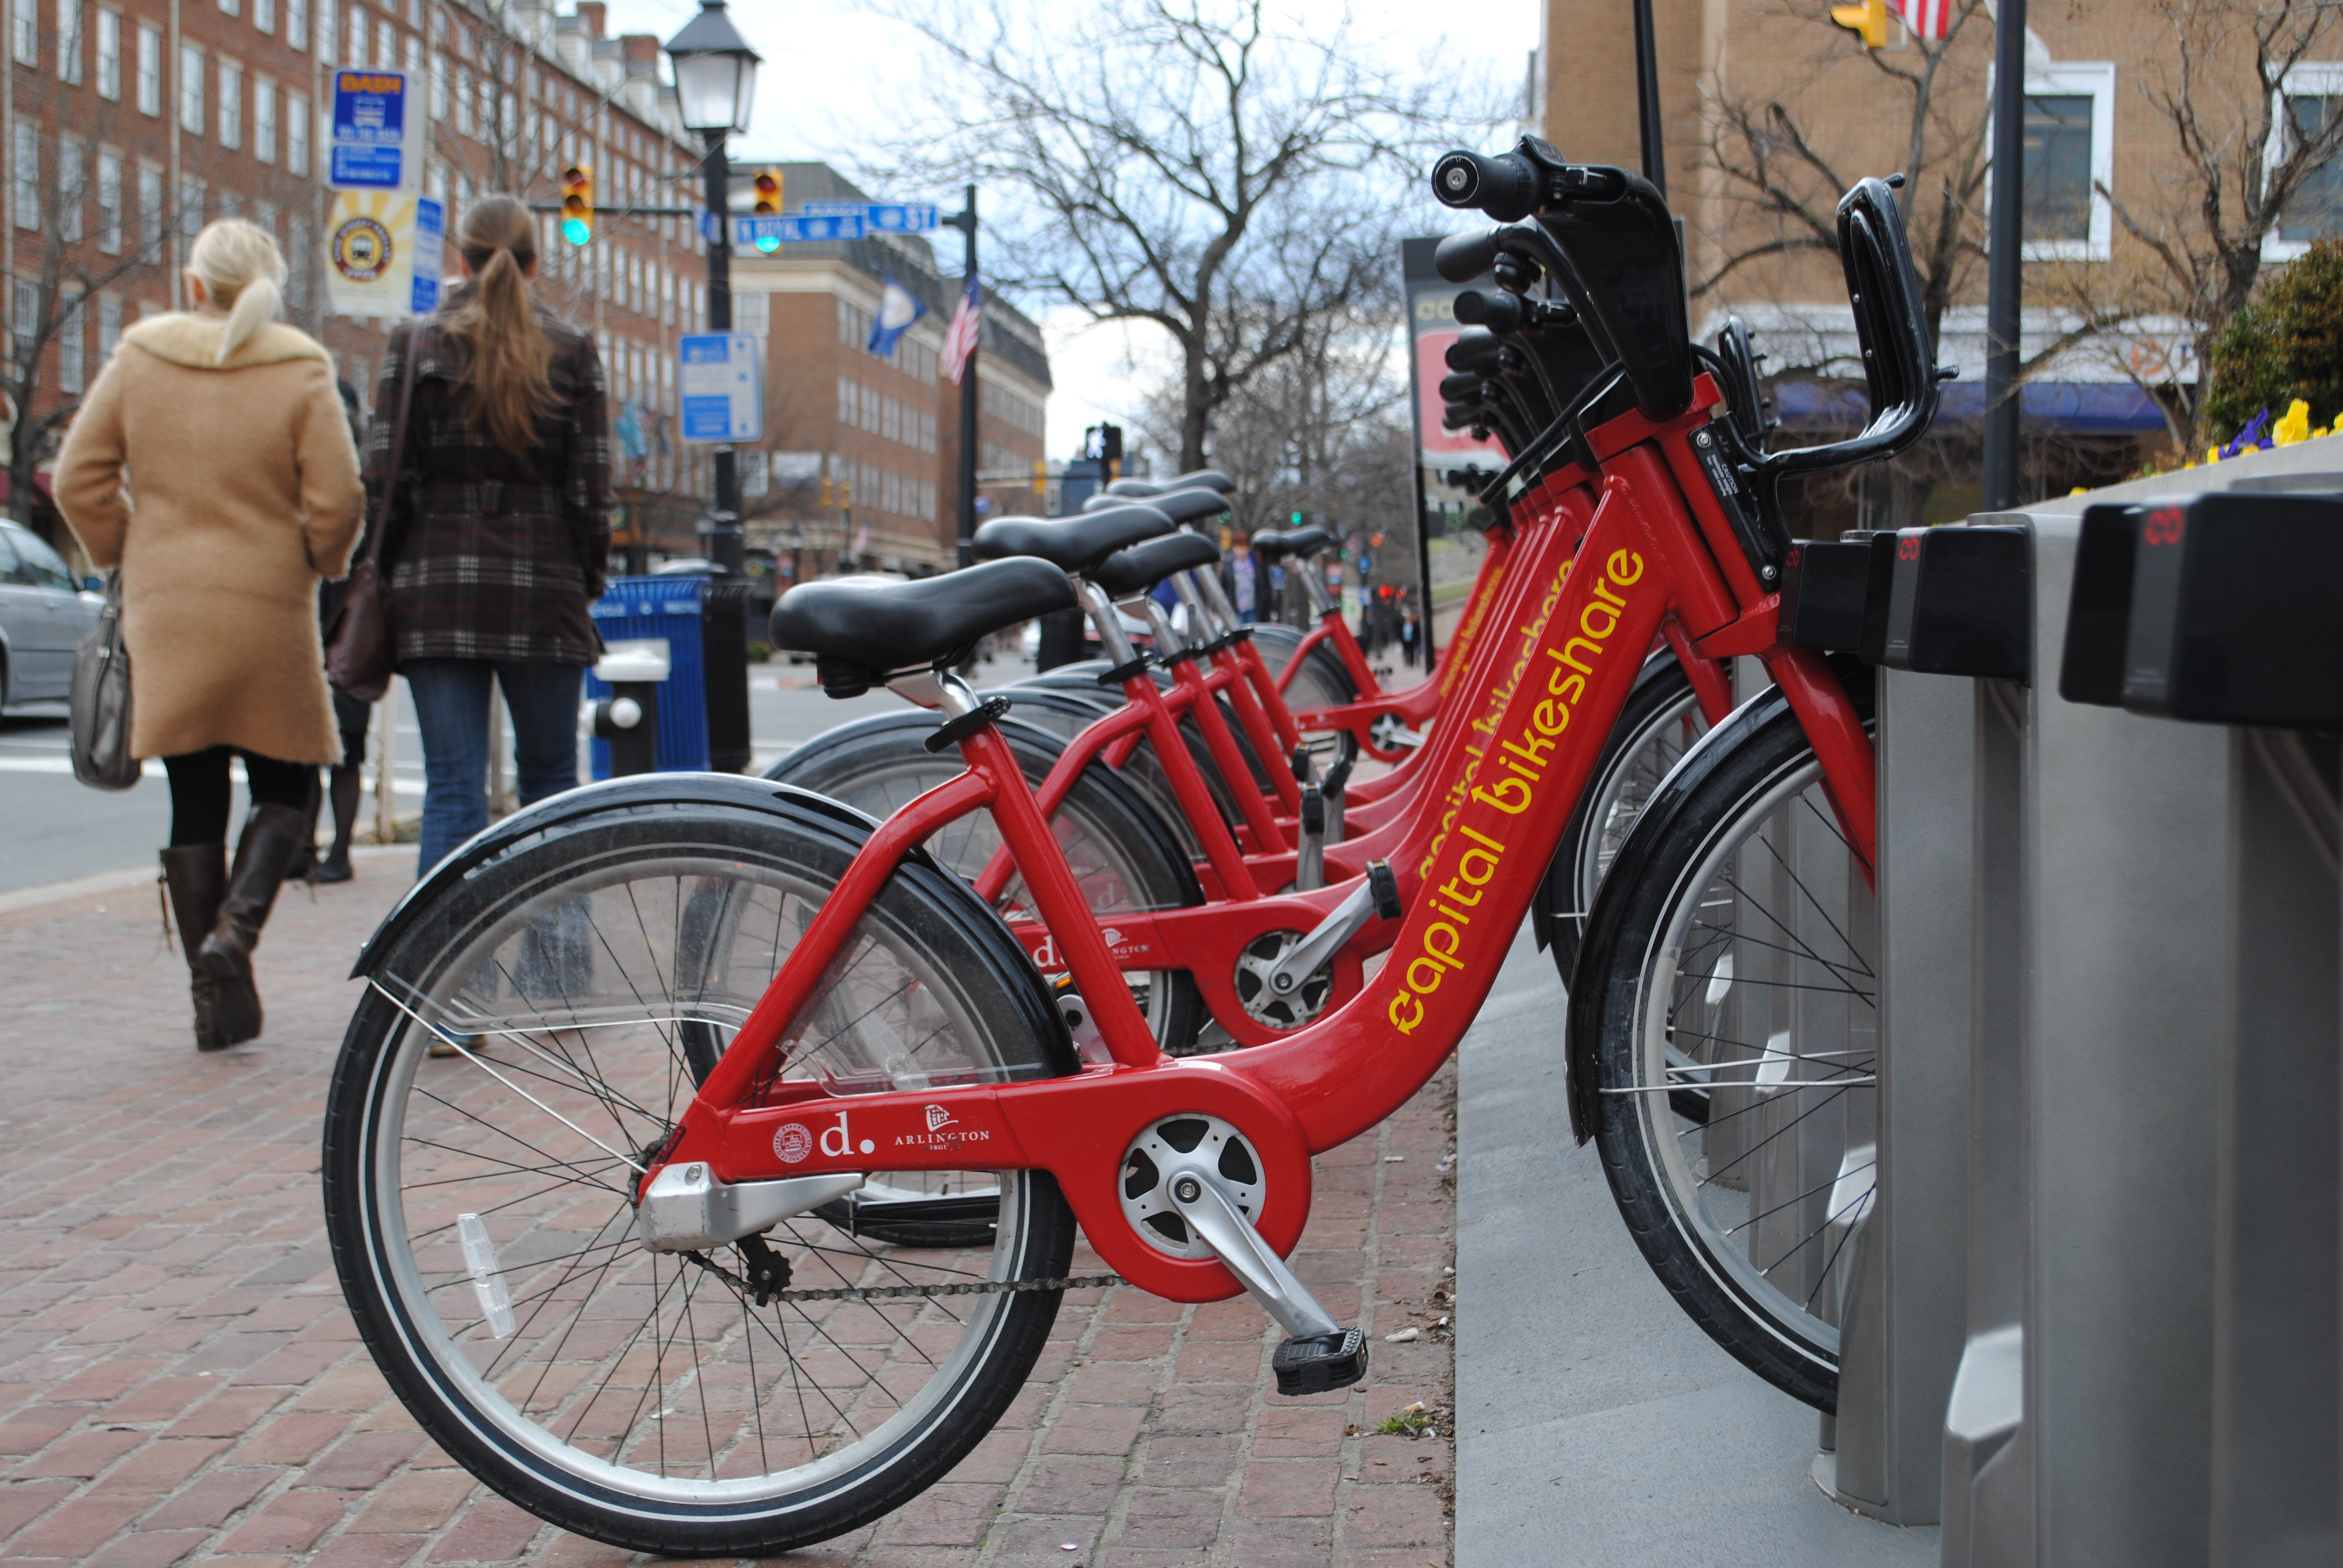 Your View Capital Bikeshare Is A Flawed Approach Alexandria